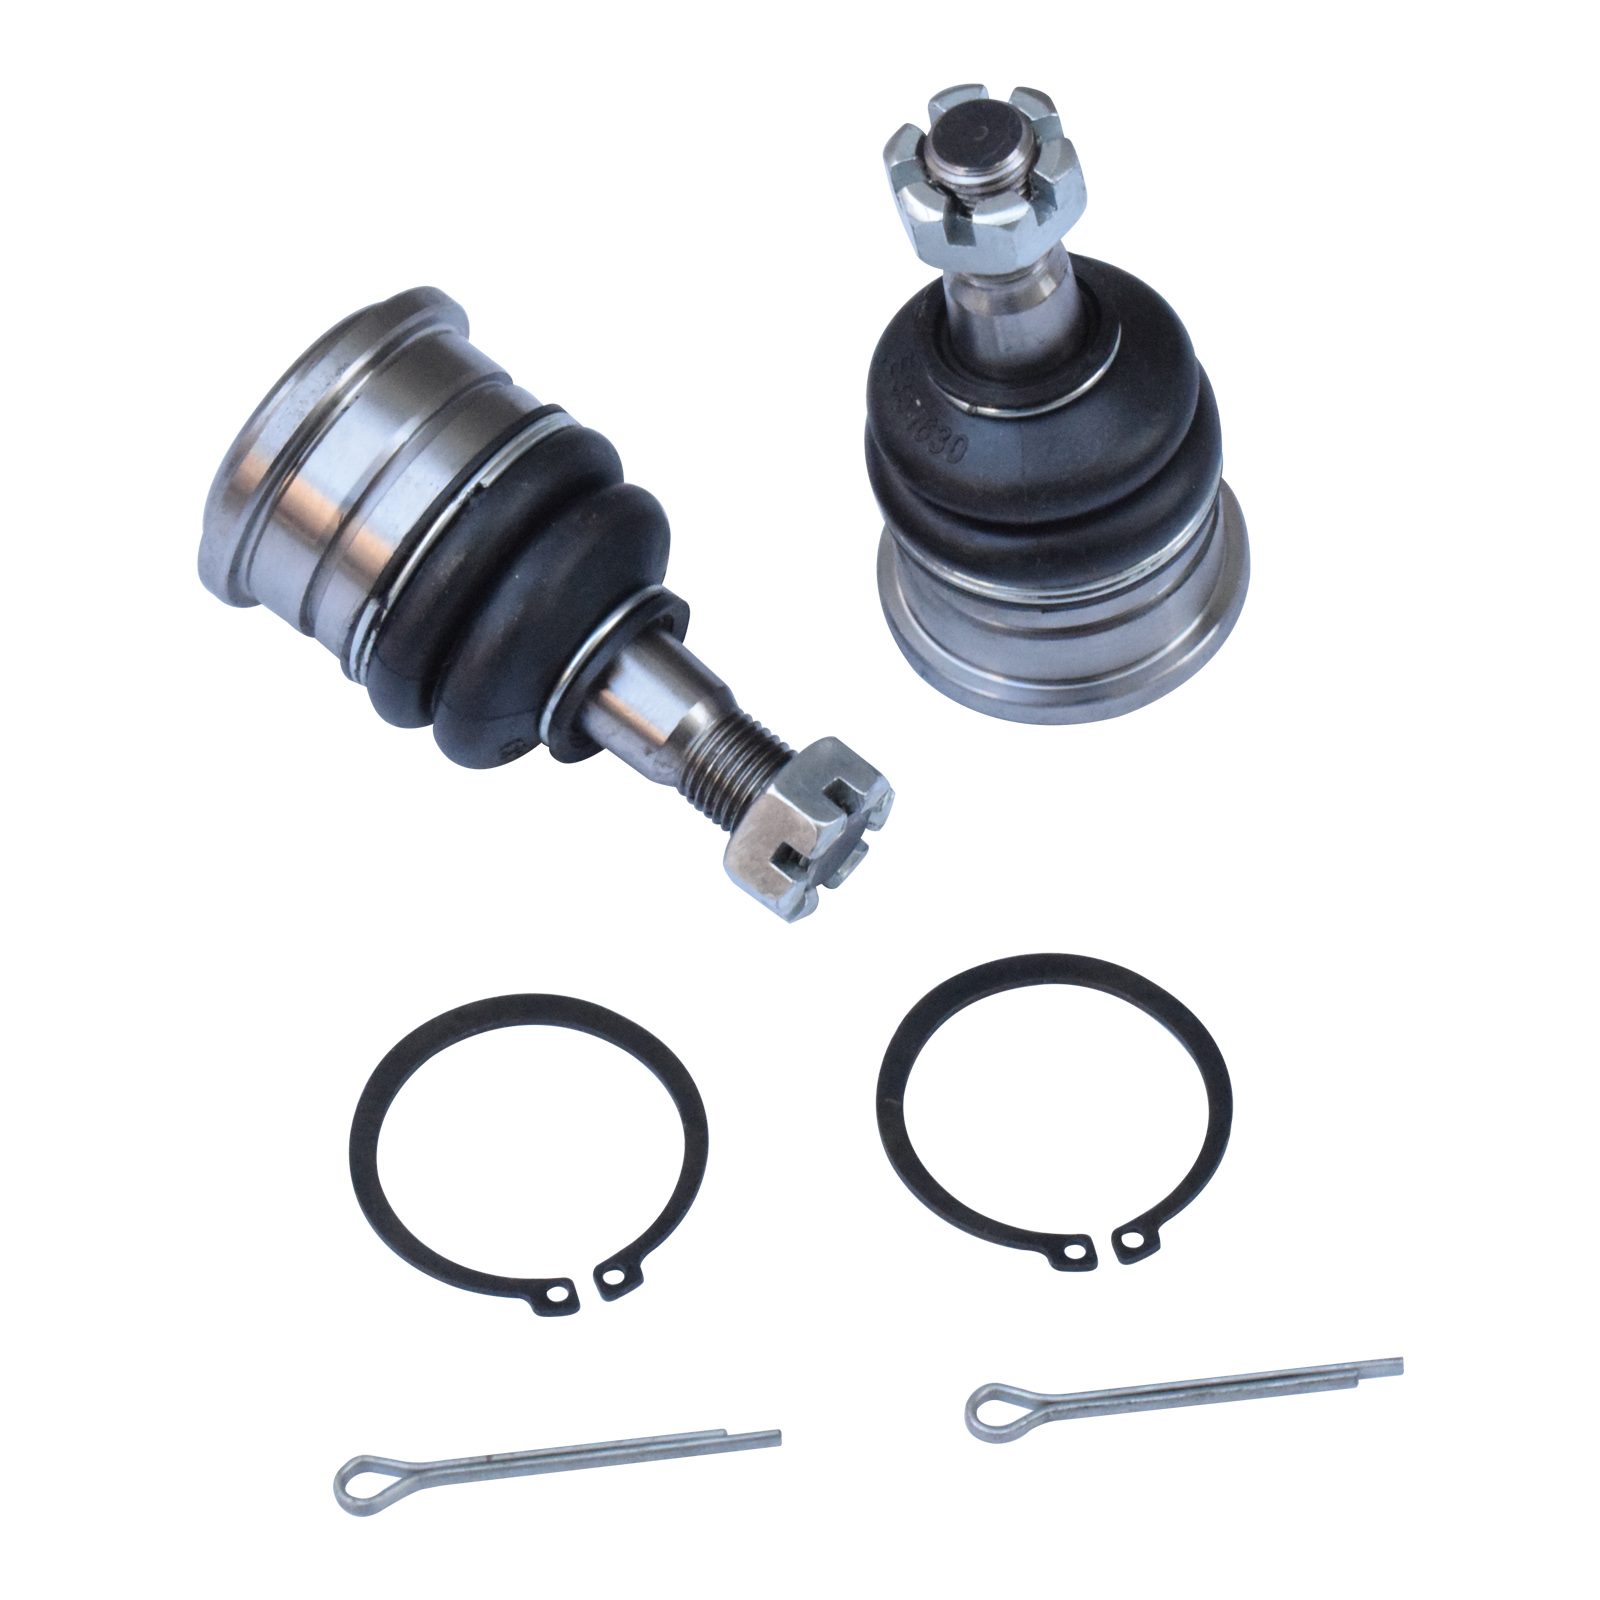 Ball Joint Upper Fit Toyota Prado 90 95 Landcruiser KZJ RZJ VZJ 1 pair image